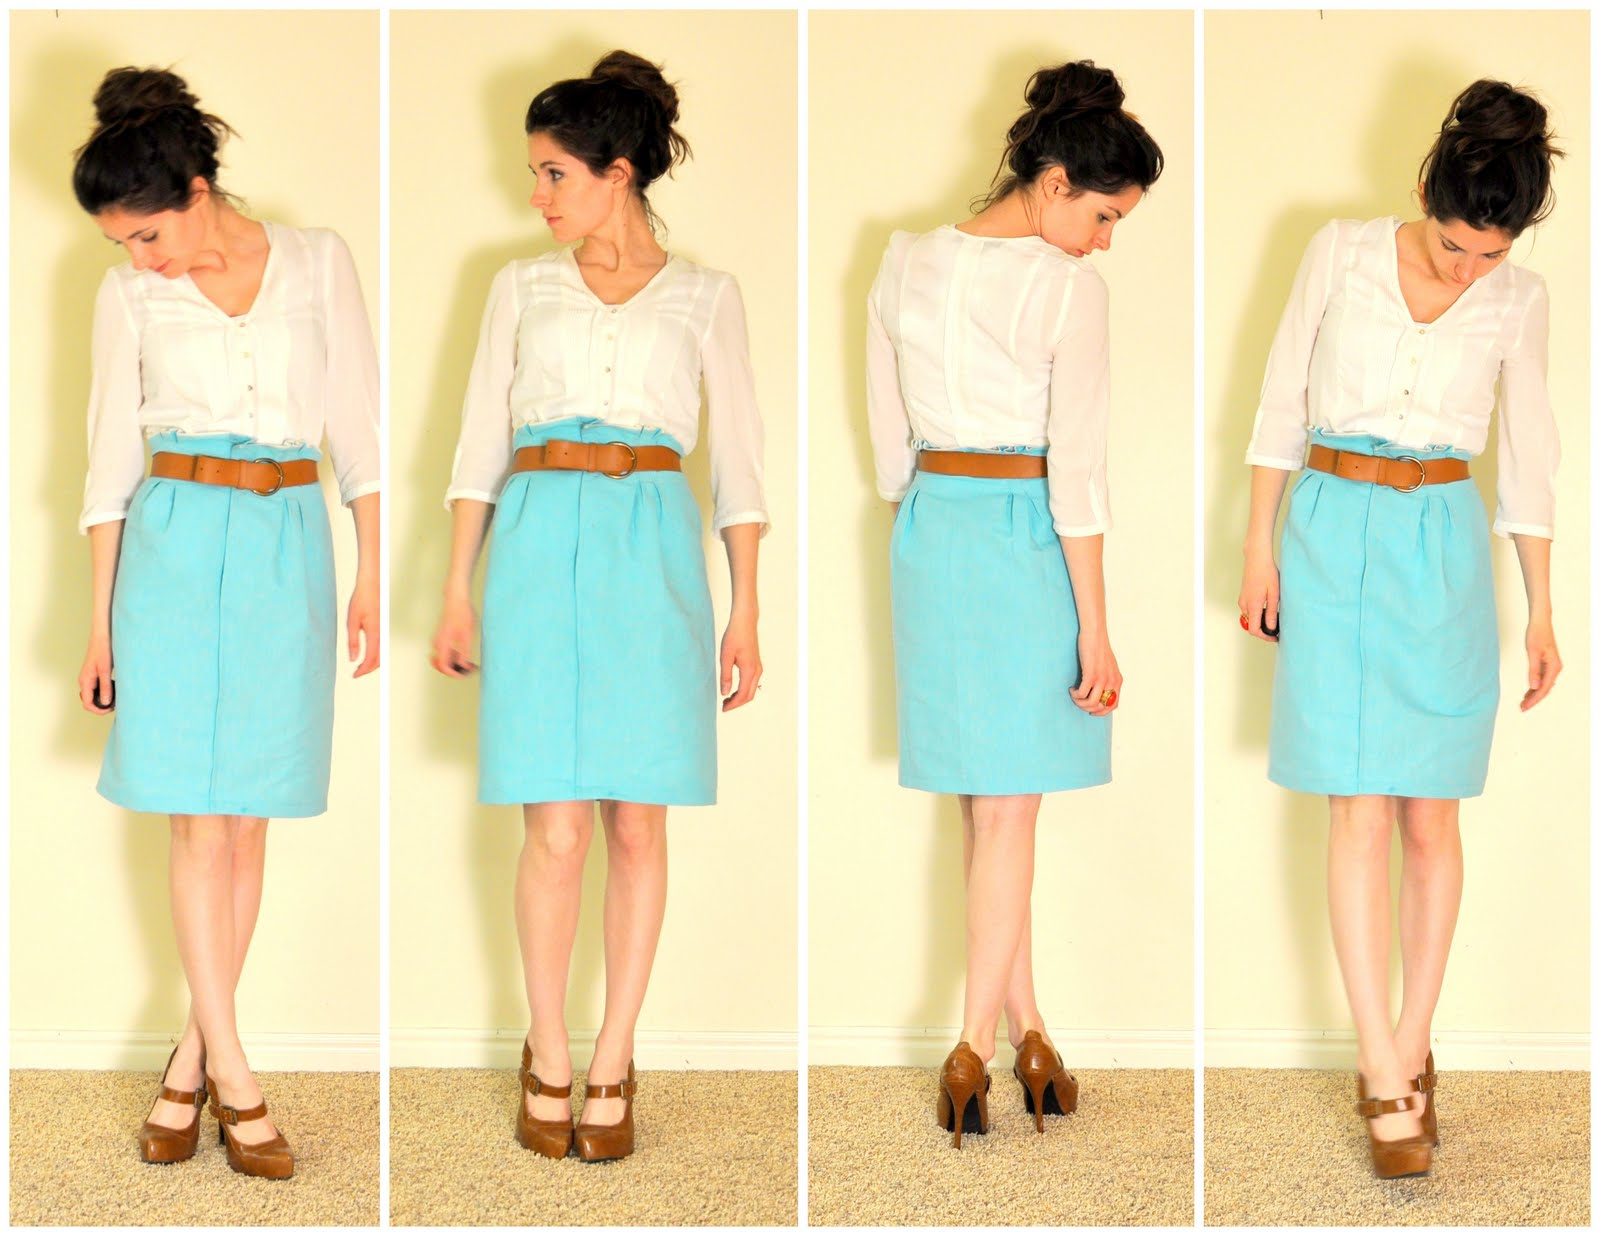 How to make a paper bag skirt with box pleats tutorial!